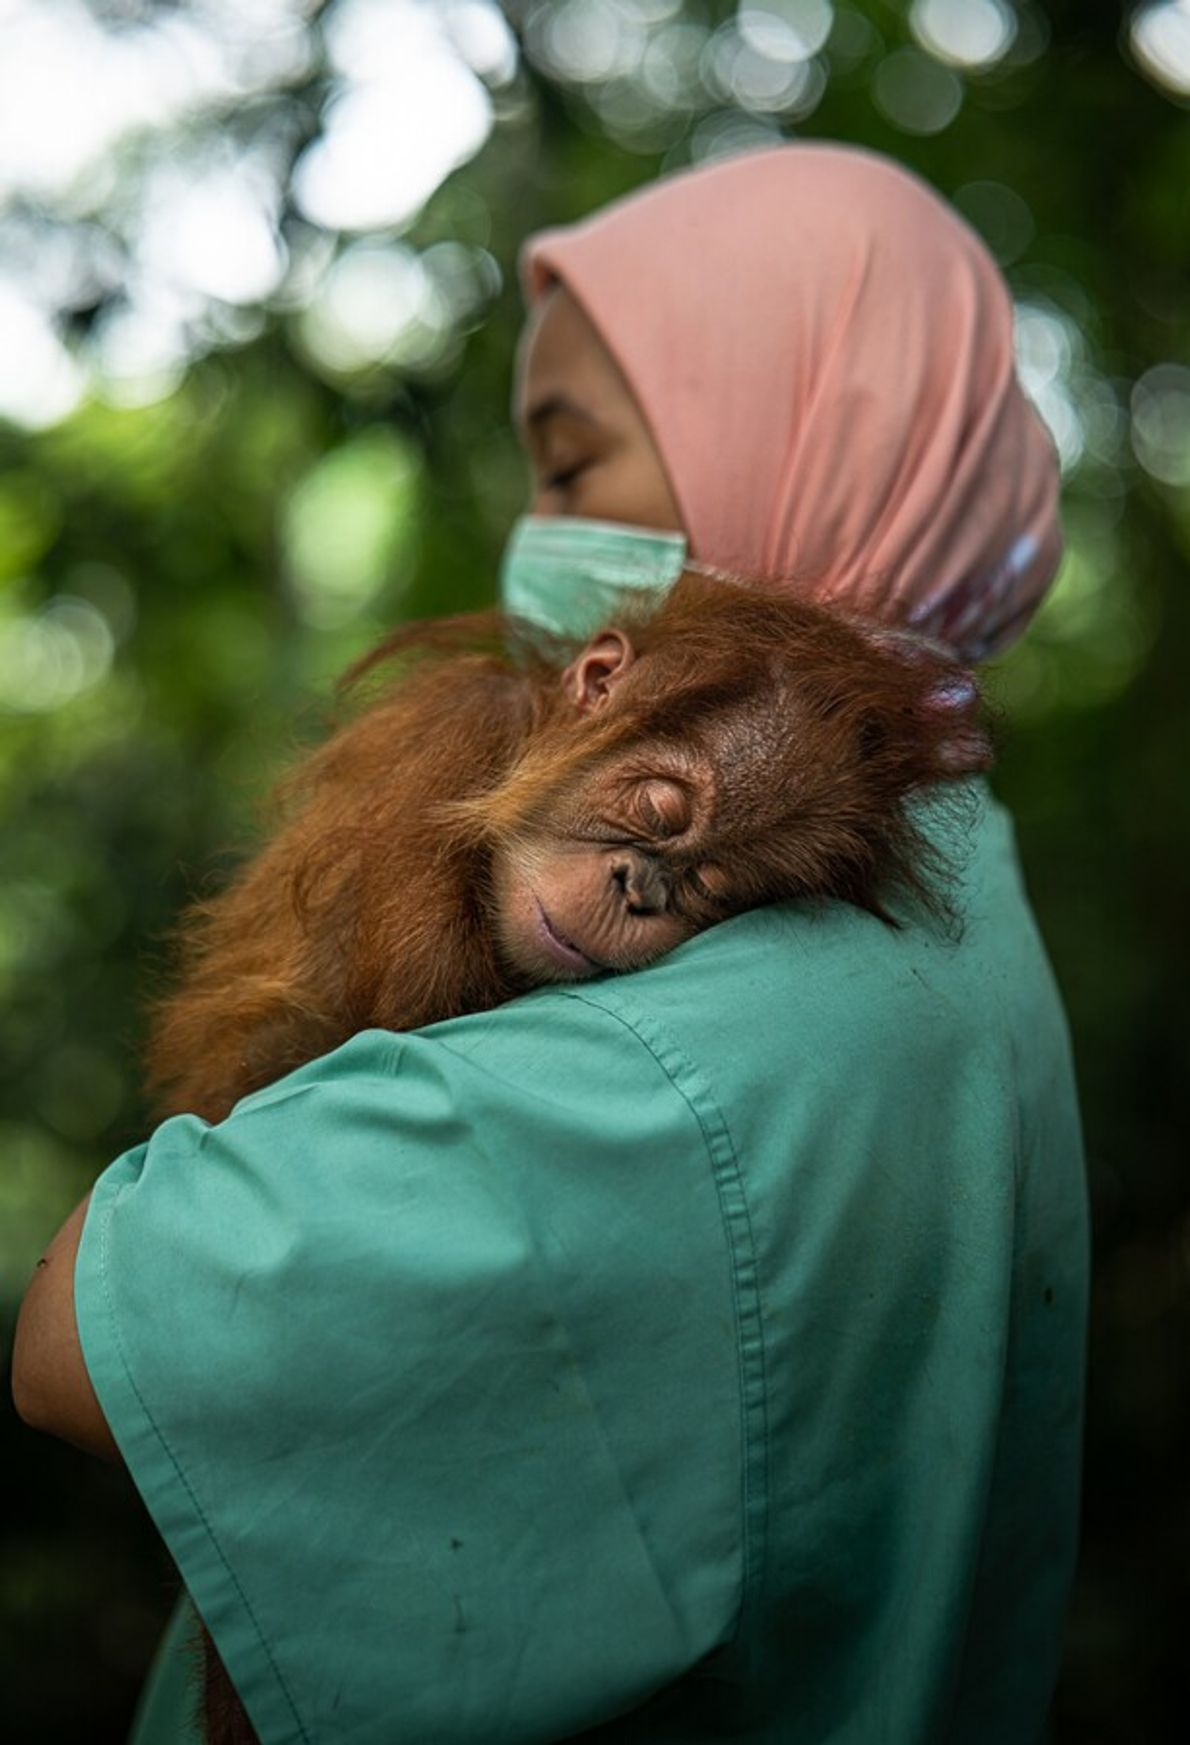 Found in a bag, her left arm broken, this baby orangutan faces a long journey to ...